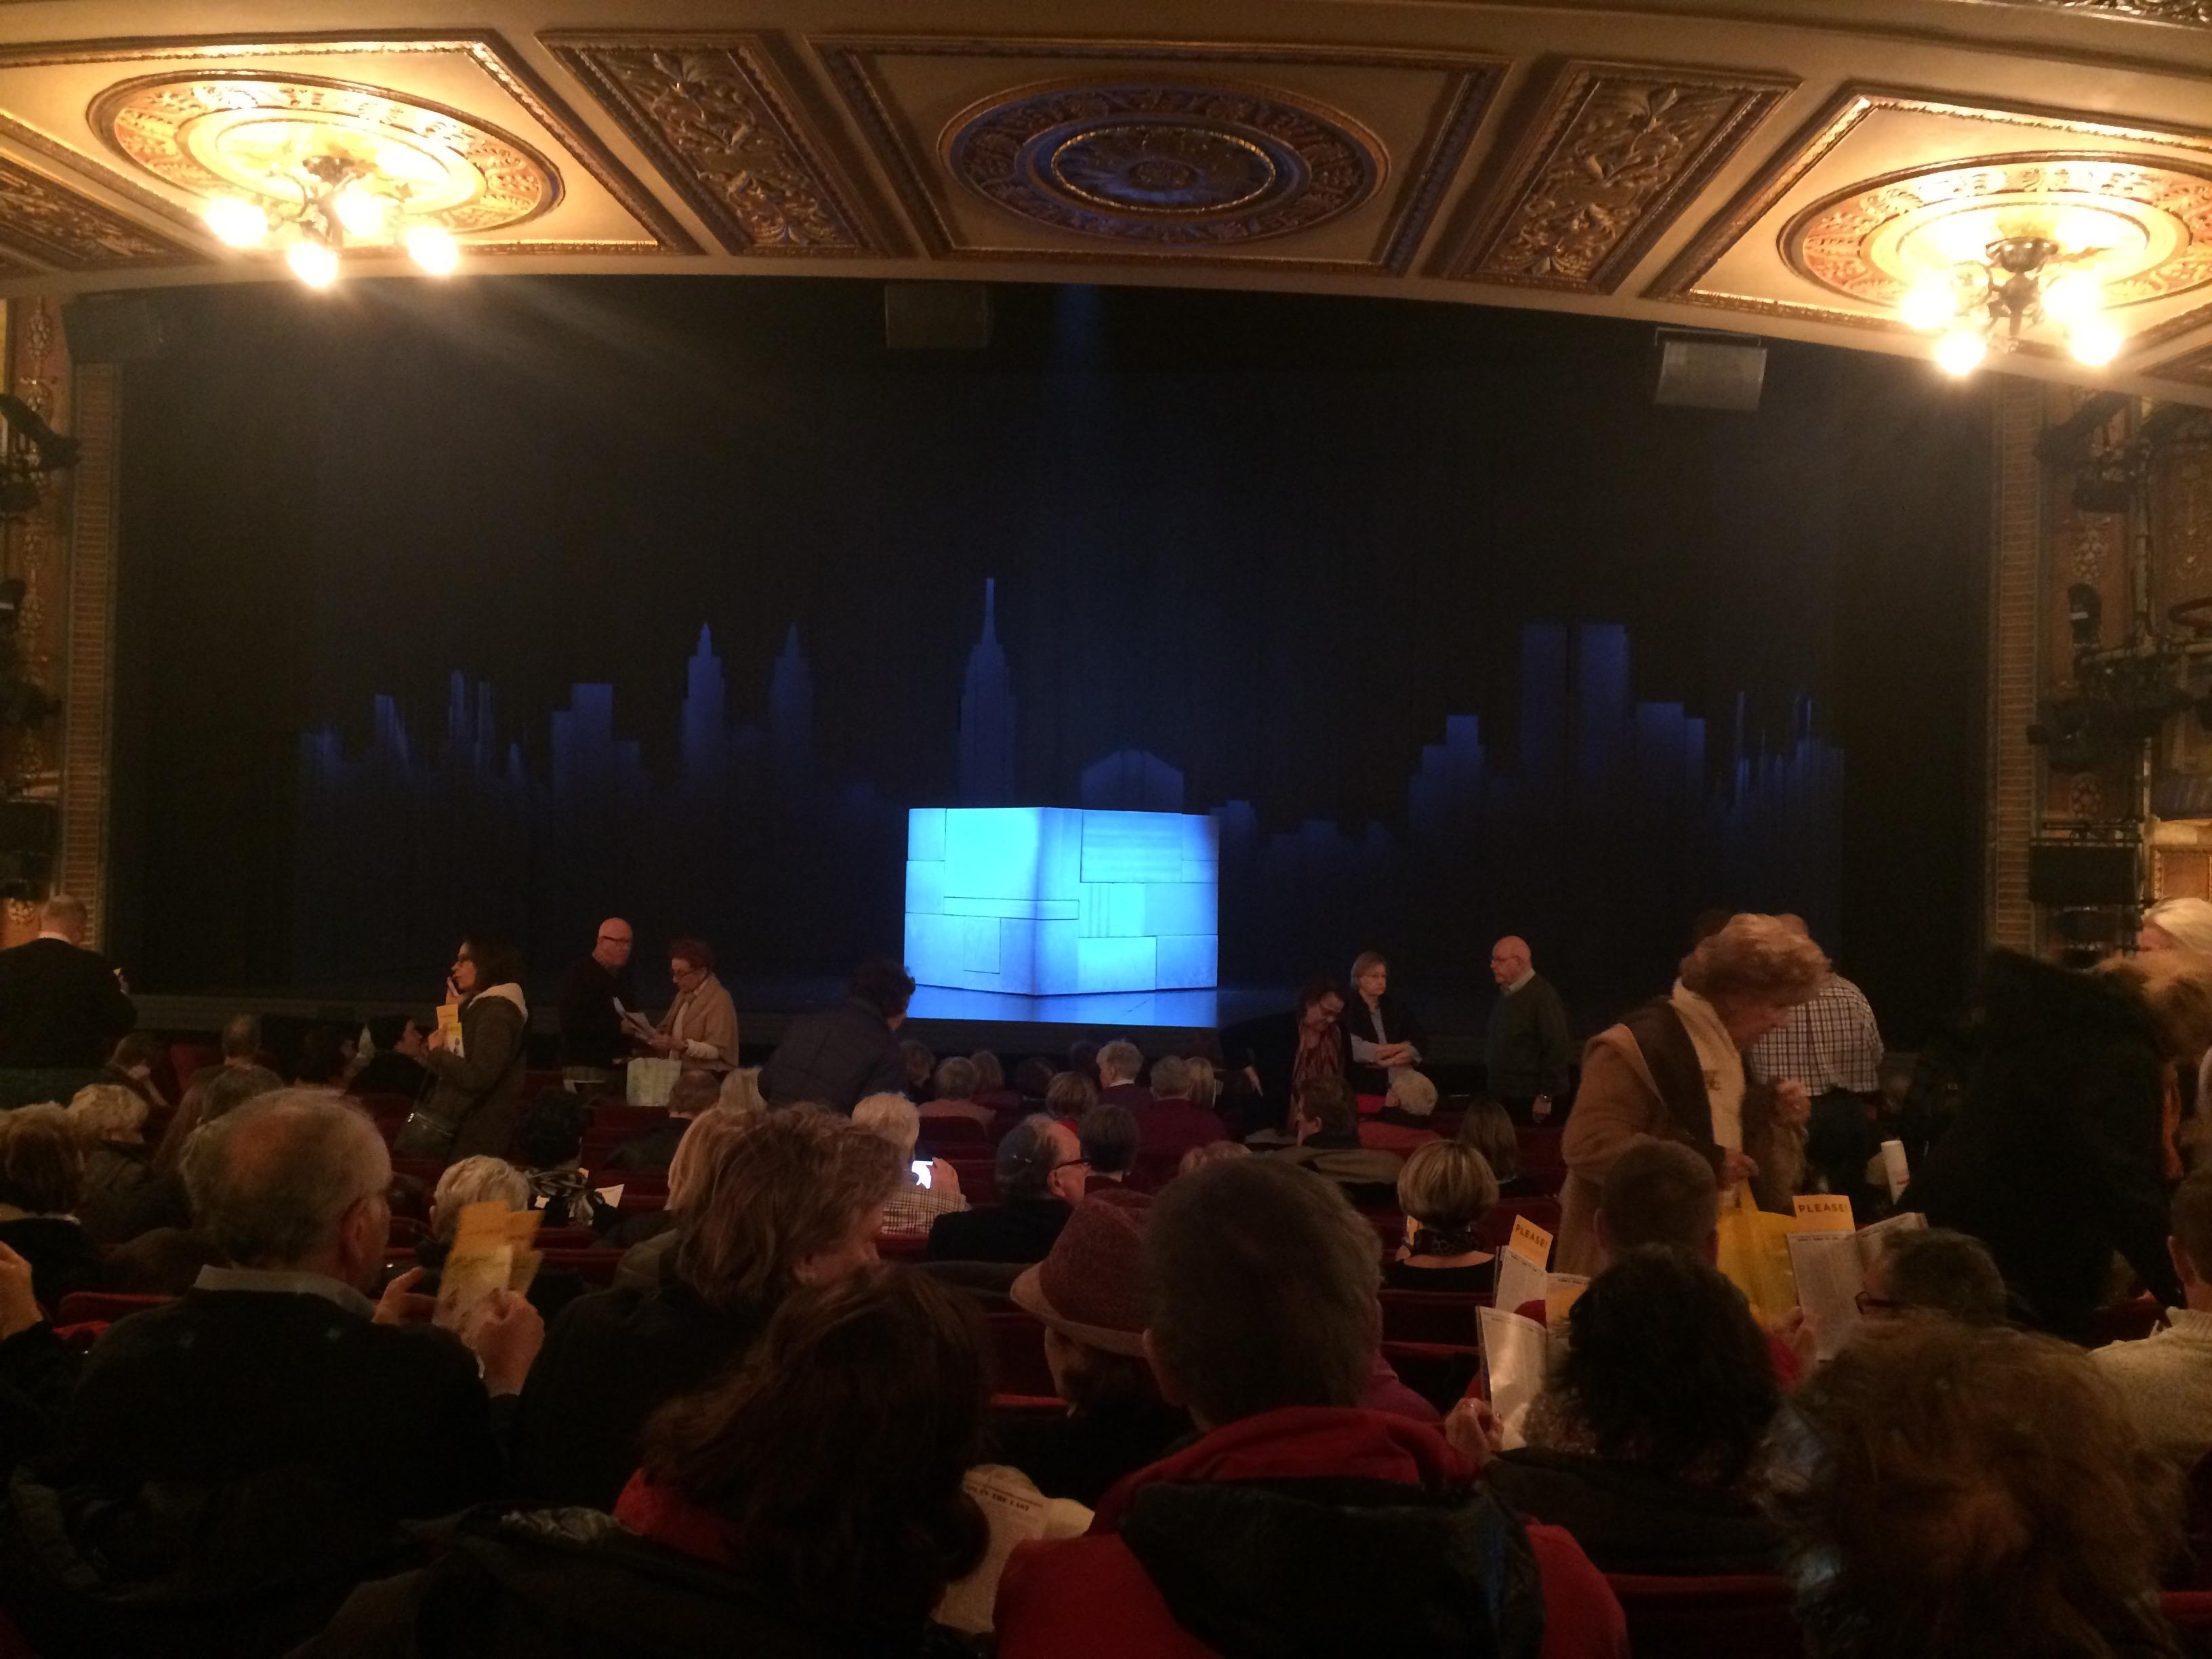 Walter Kerr Theatre Section Orchestra C Row R Seat 101